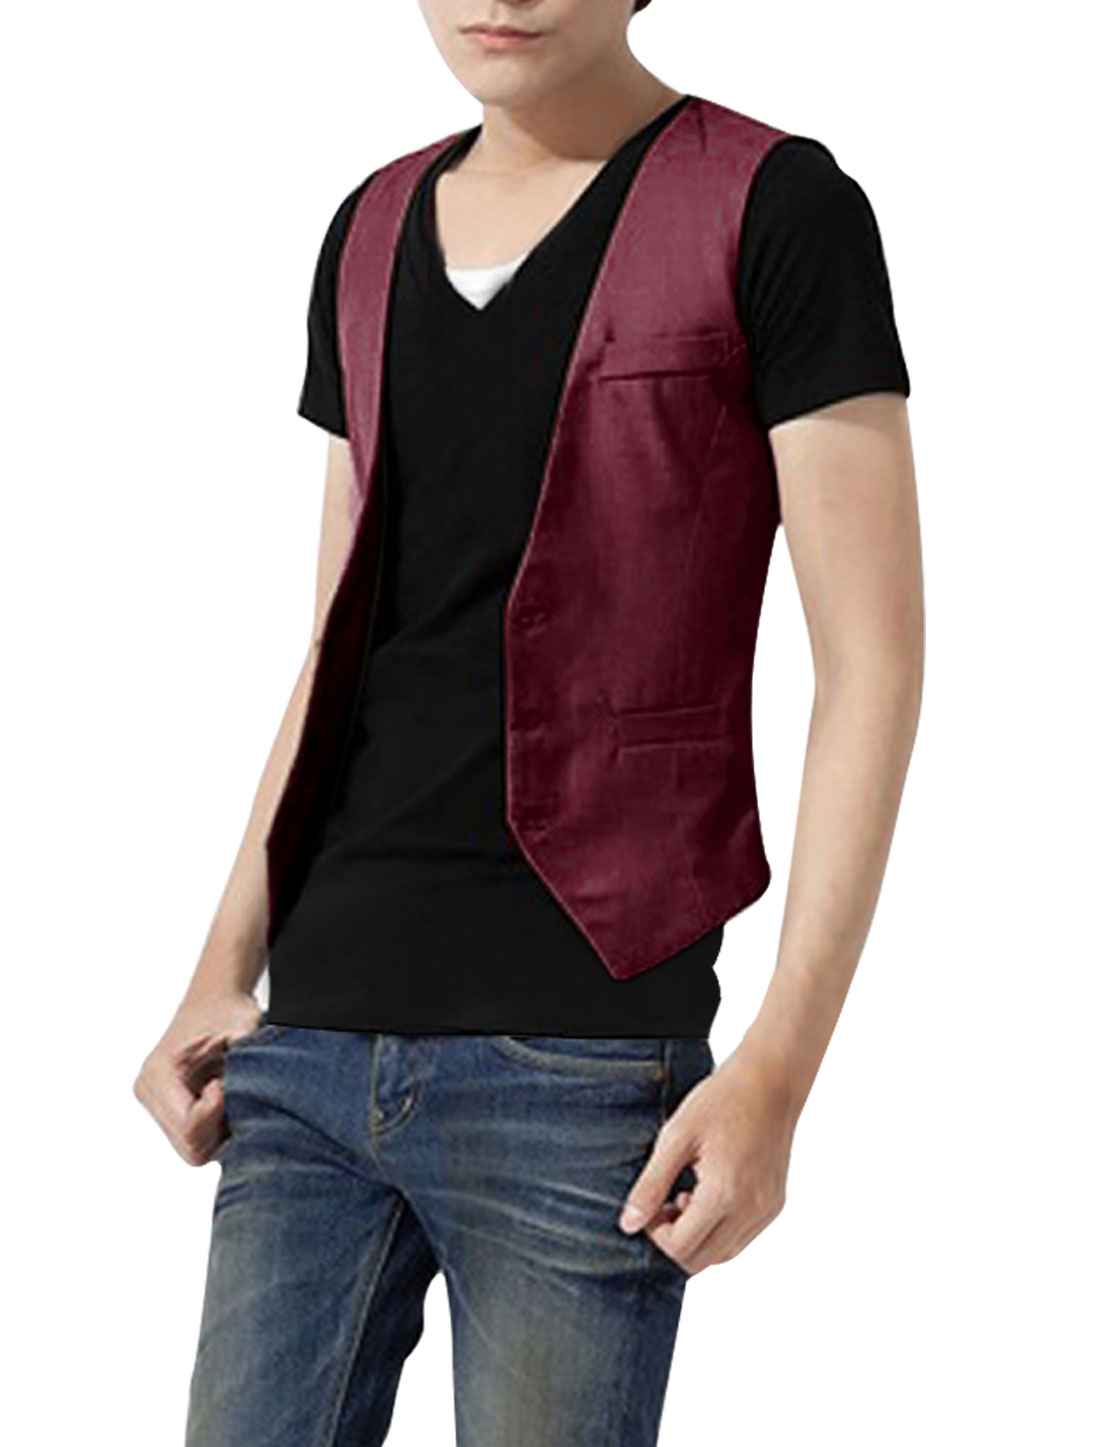 Men Stylish Sleeveless Buckle Decor Back Burgundy Vests S